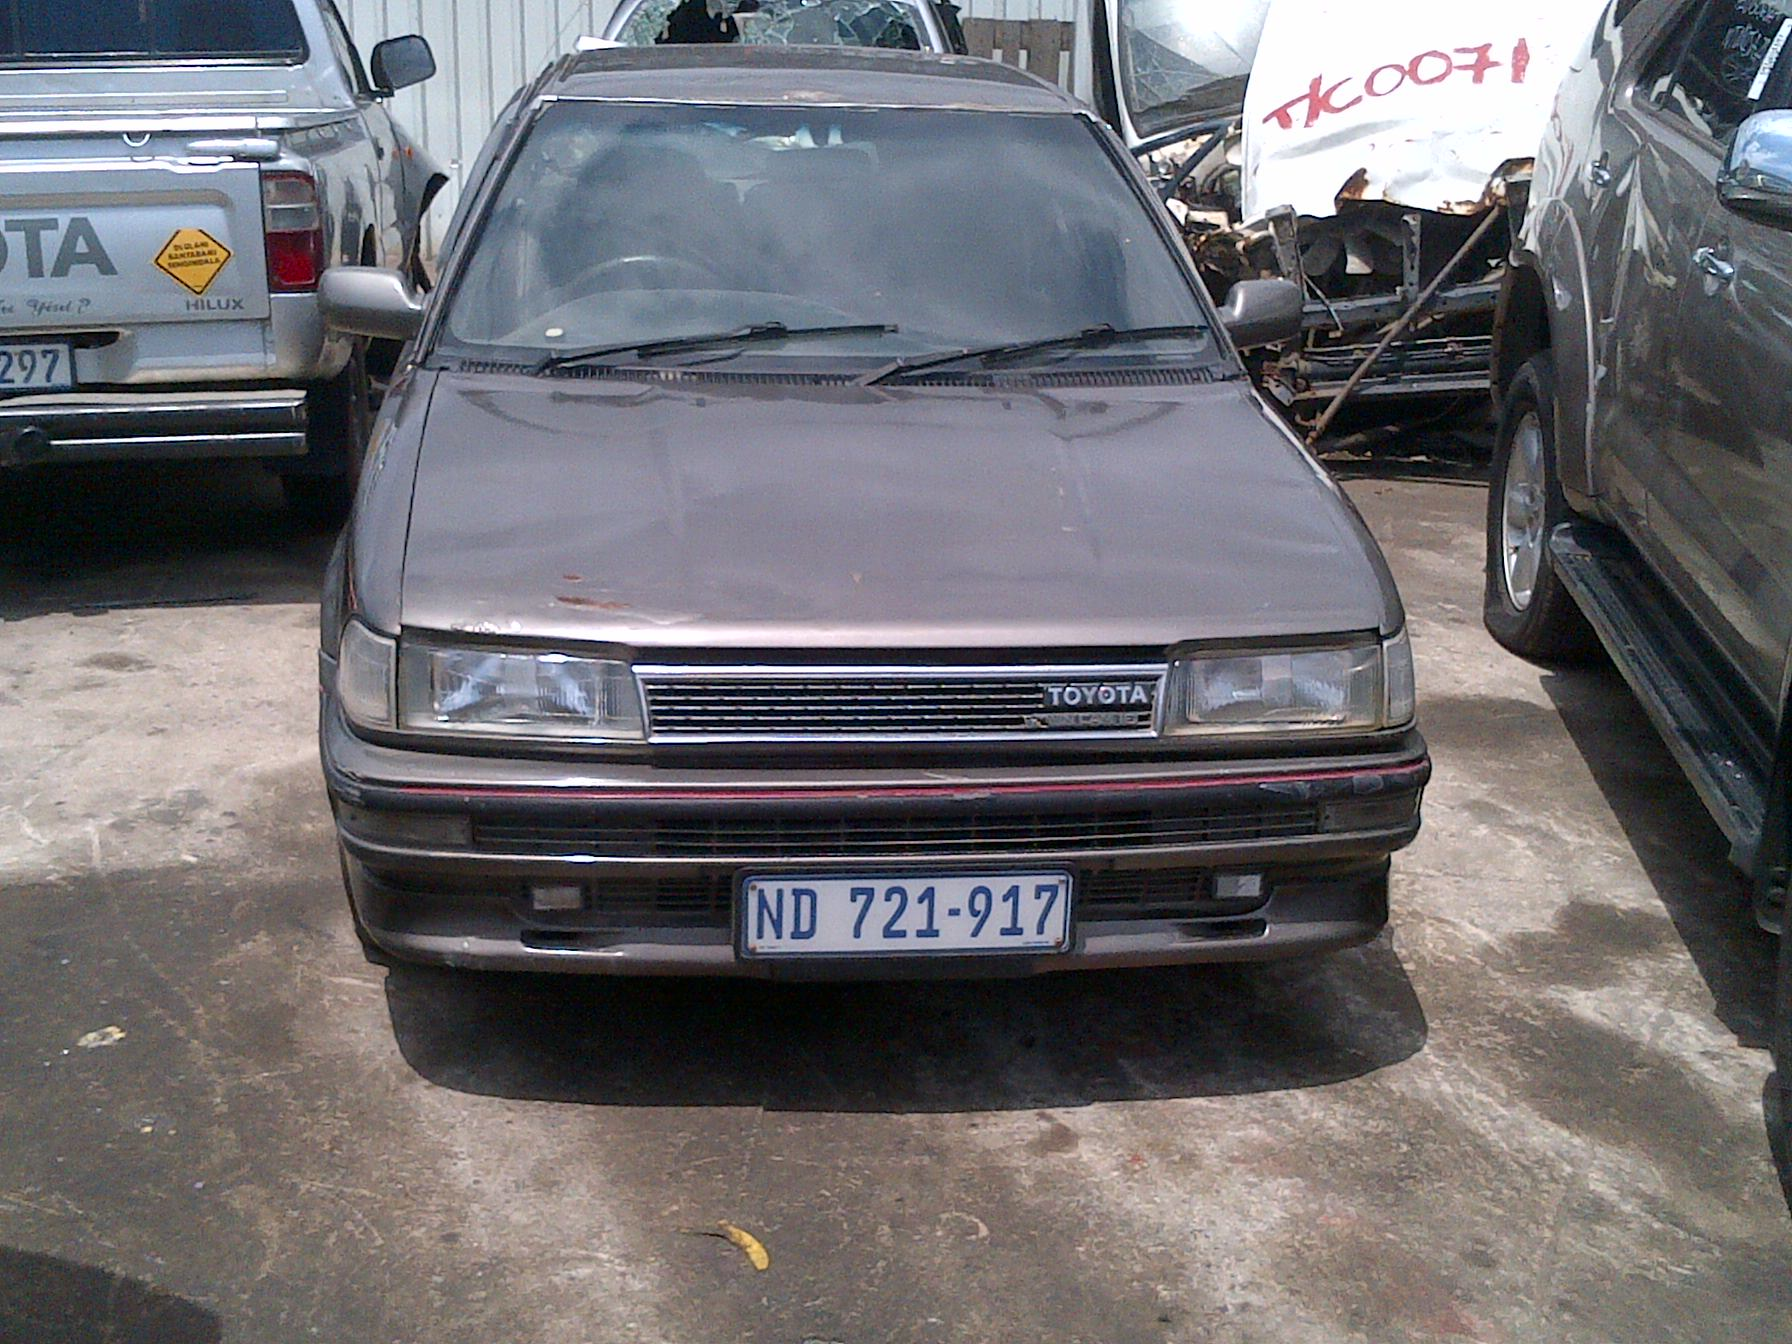 1989 Toyota Corolla Twin Cam 24 Valve - Stripping For Parts